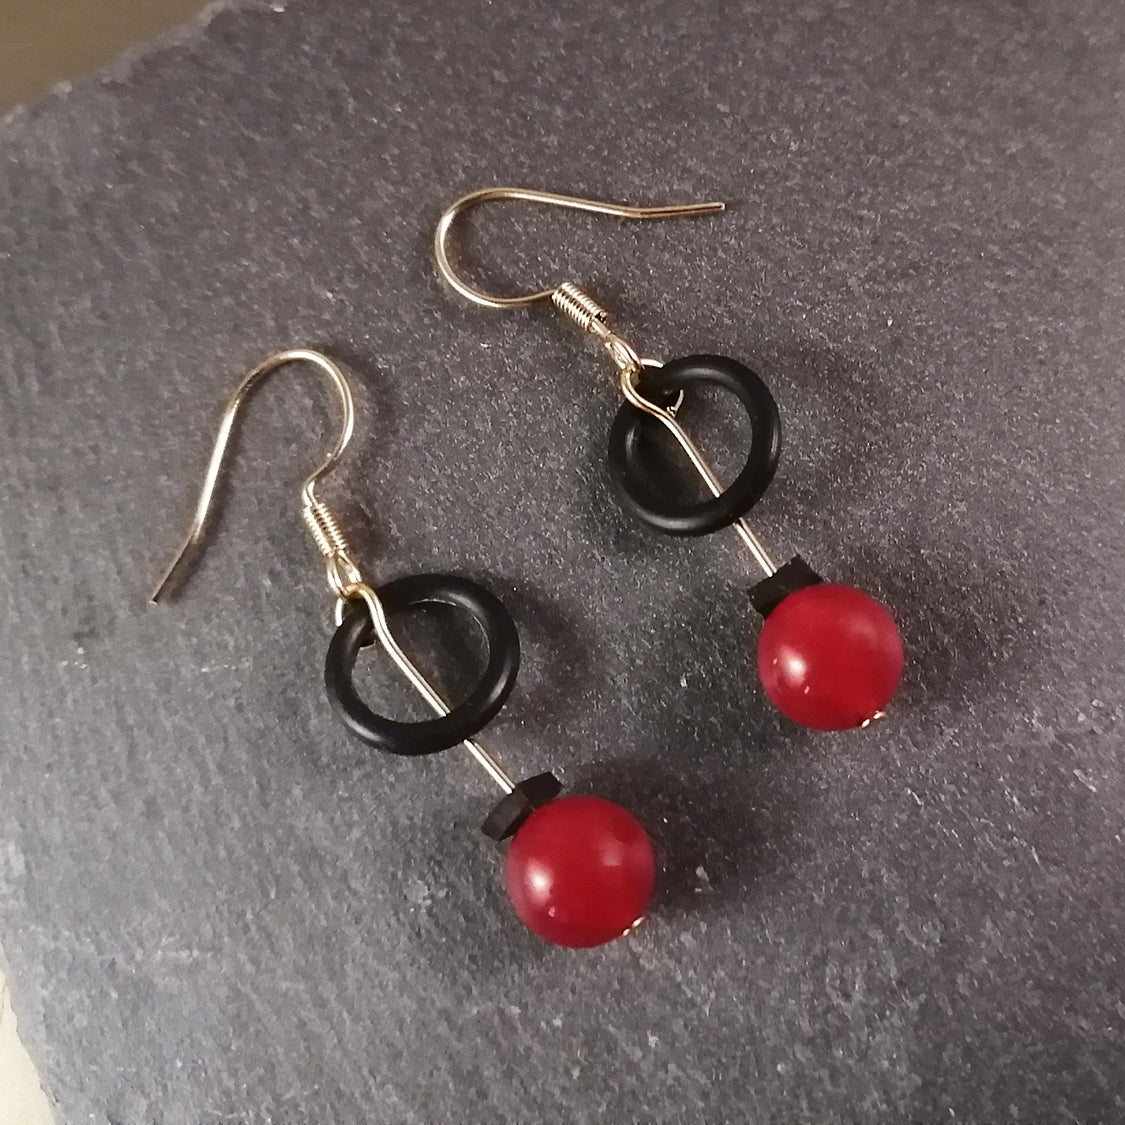 Banshy-Earrings upcycled- o'rings from the dive industry-red glass bead-brass, stainless accessories from the sea-rubber- sea brand-bijoux inspiré de la mer